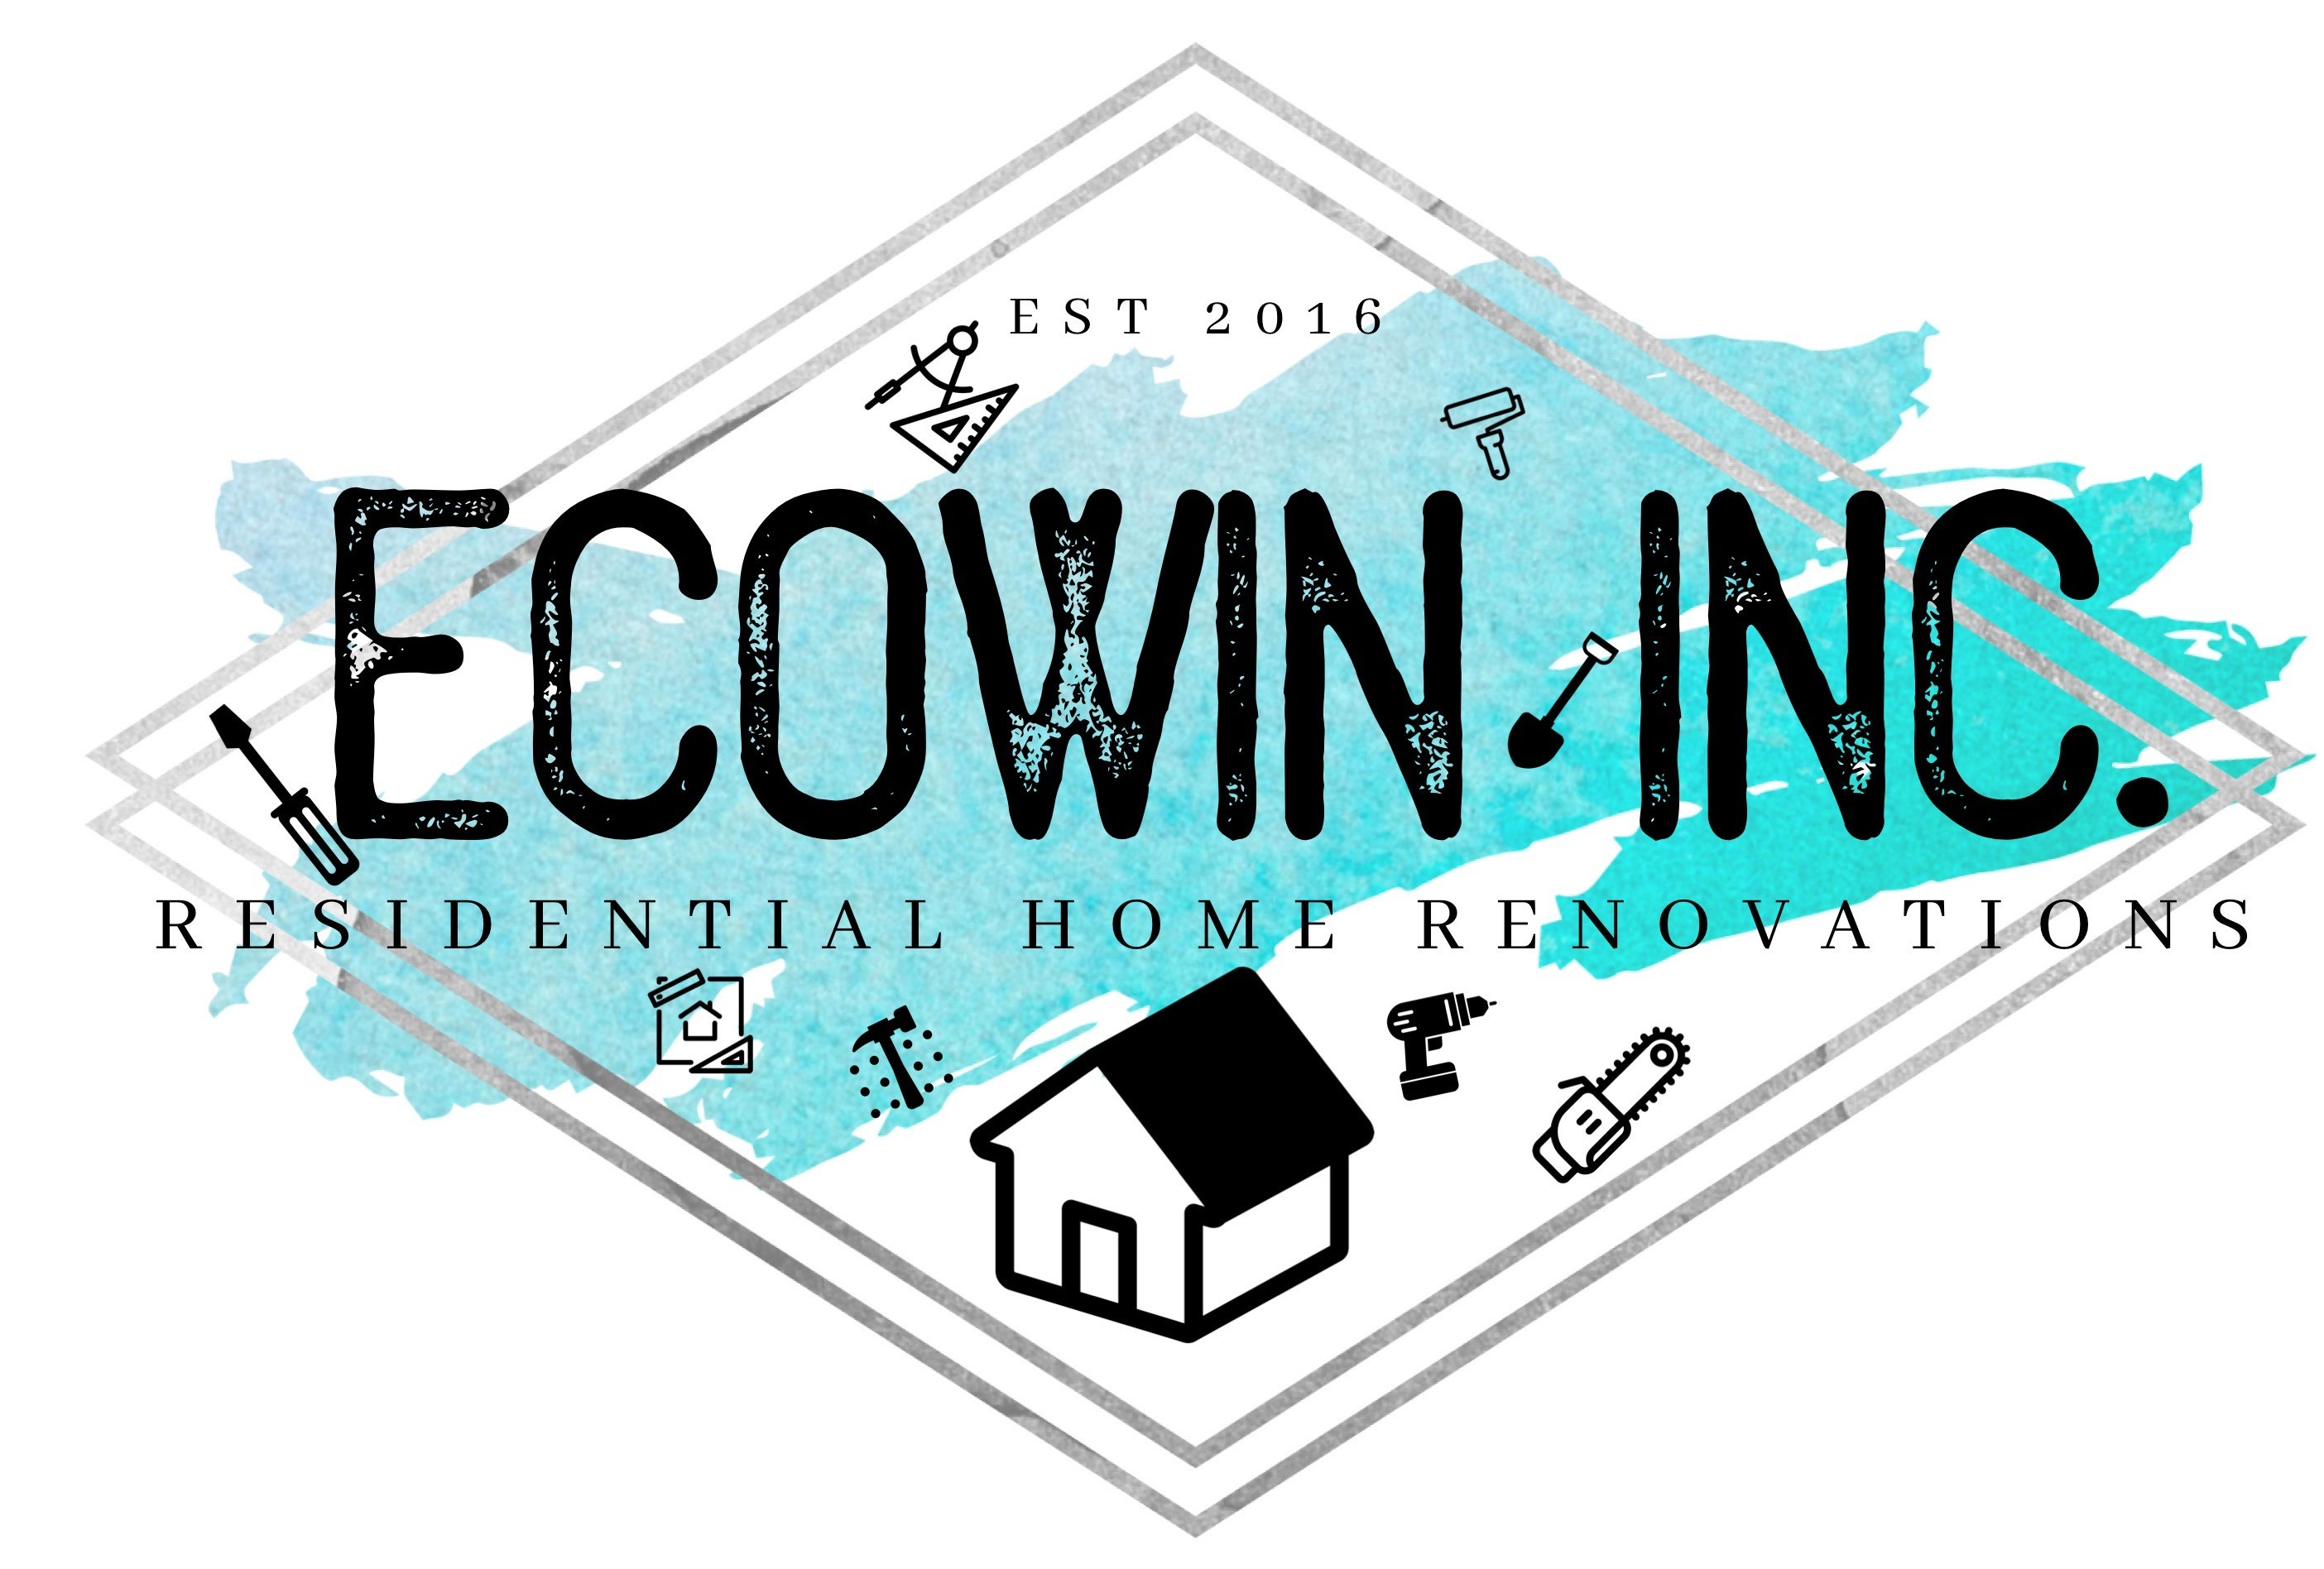 Ecowin Inc. Residential Home Renovations